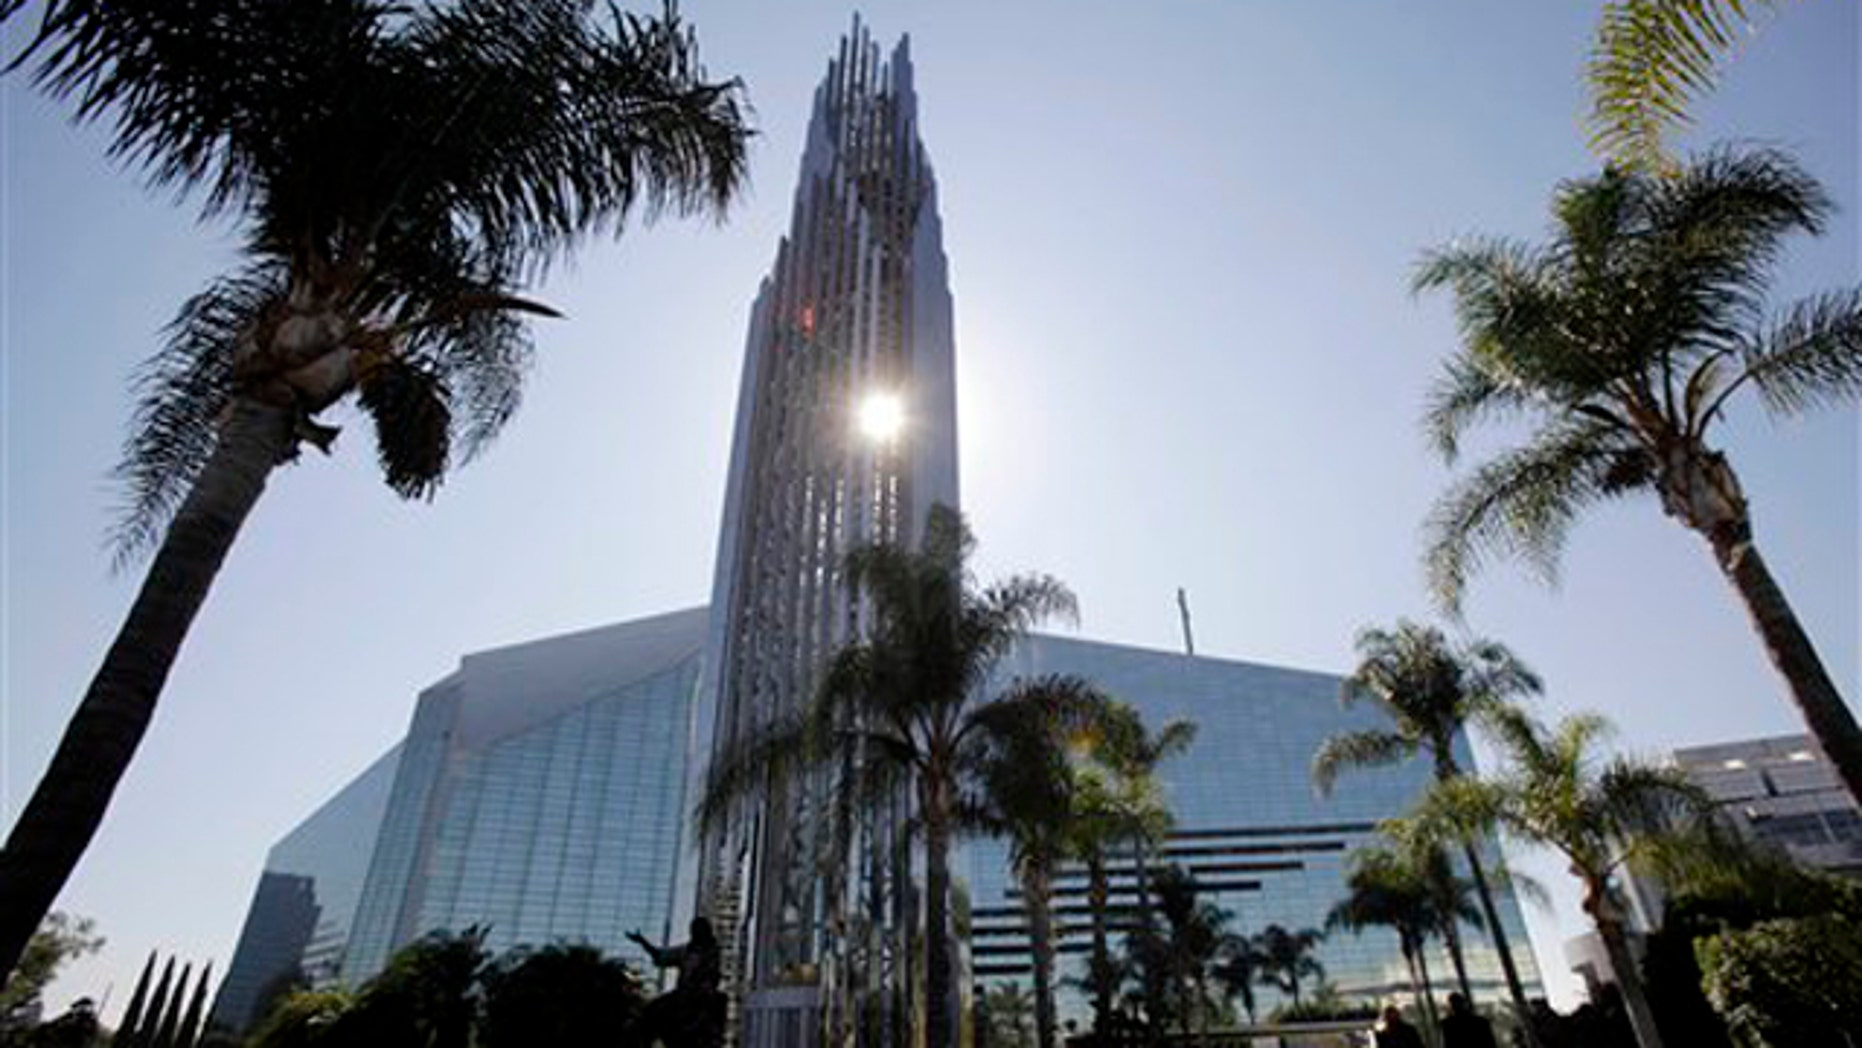 This Oct. 27, 2011 photo shows the Crystal Cathedral in Garden Grove, Calif.